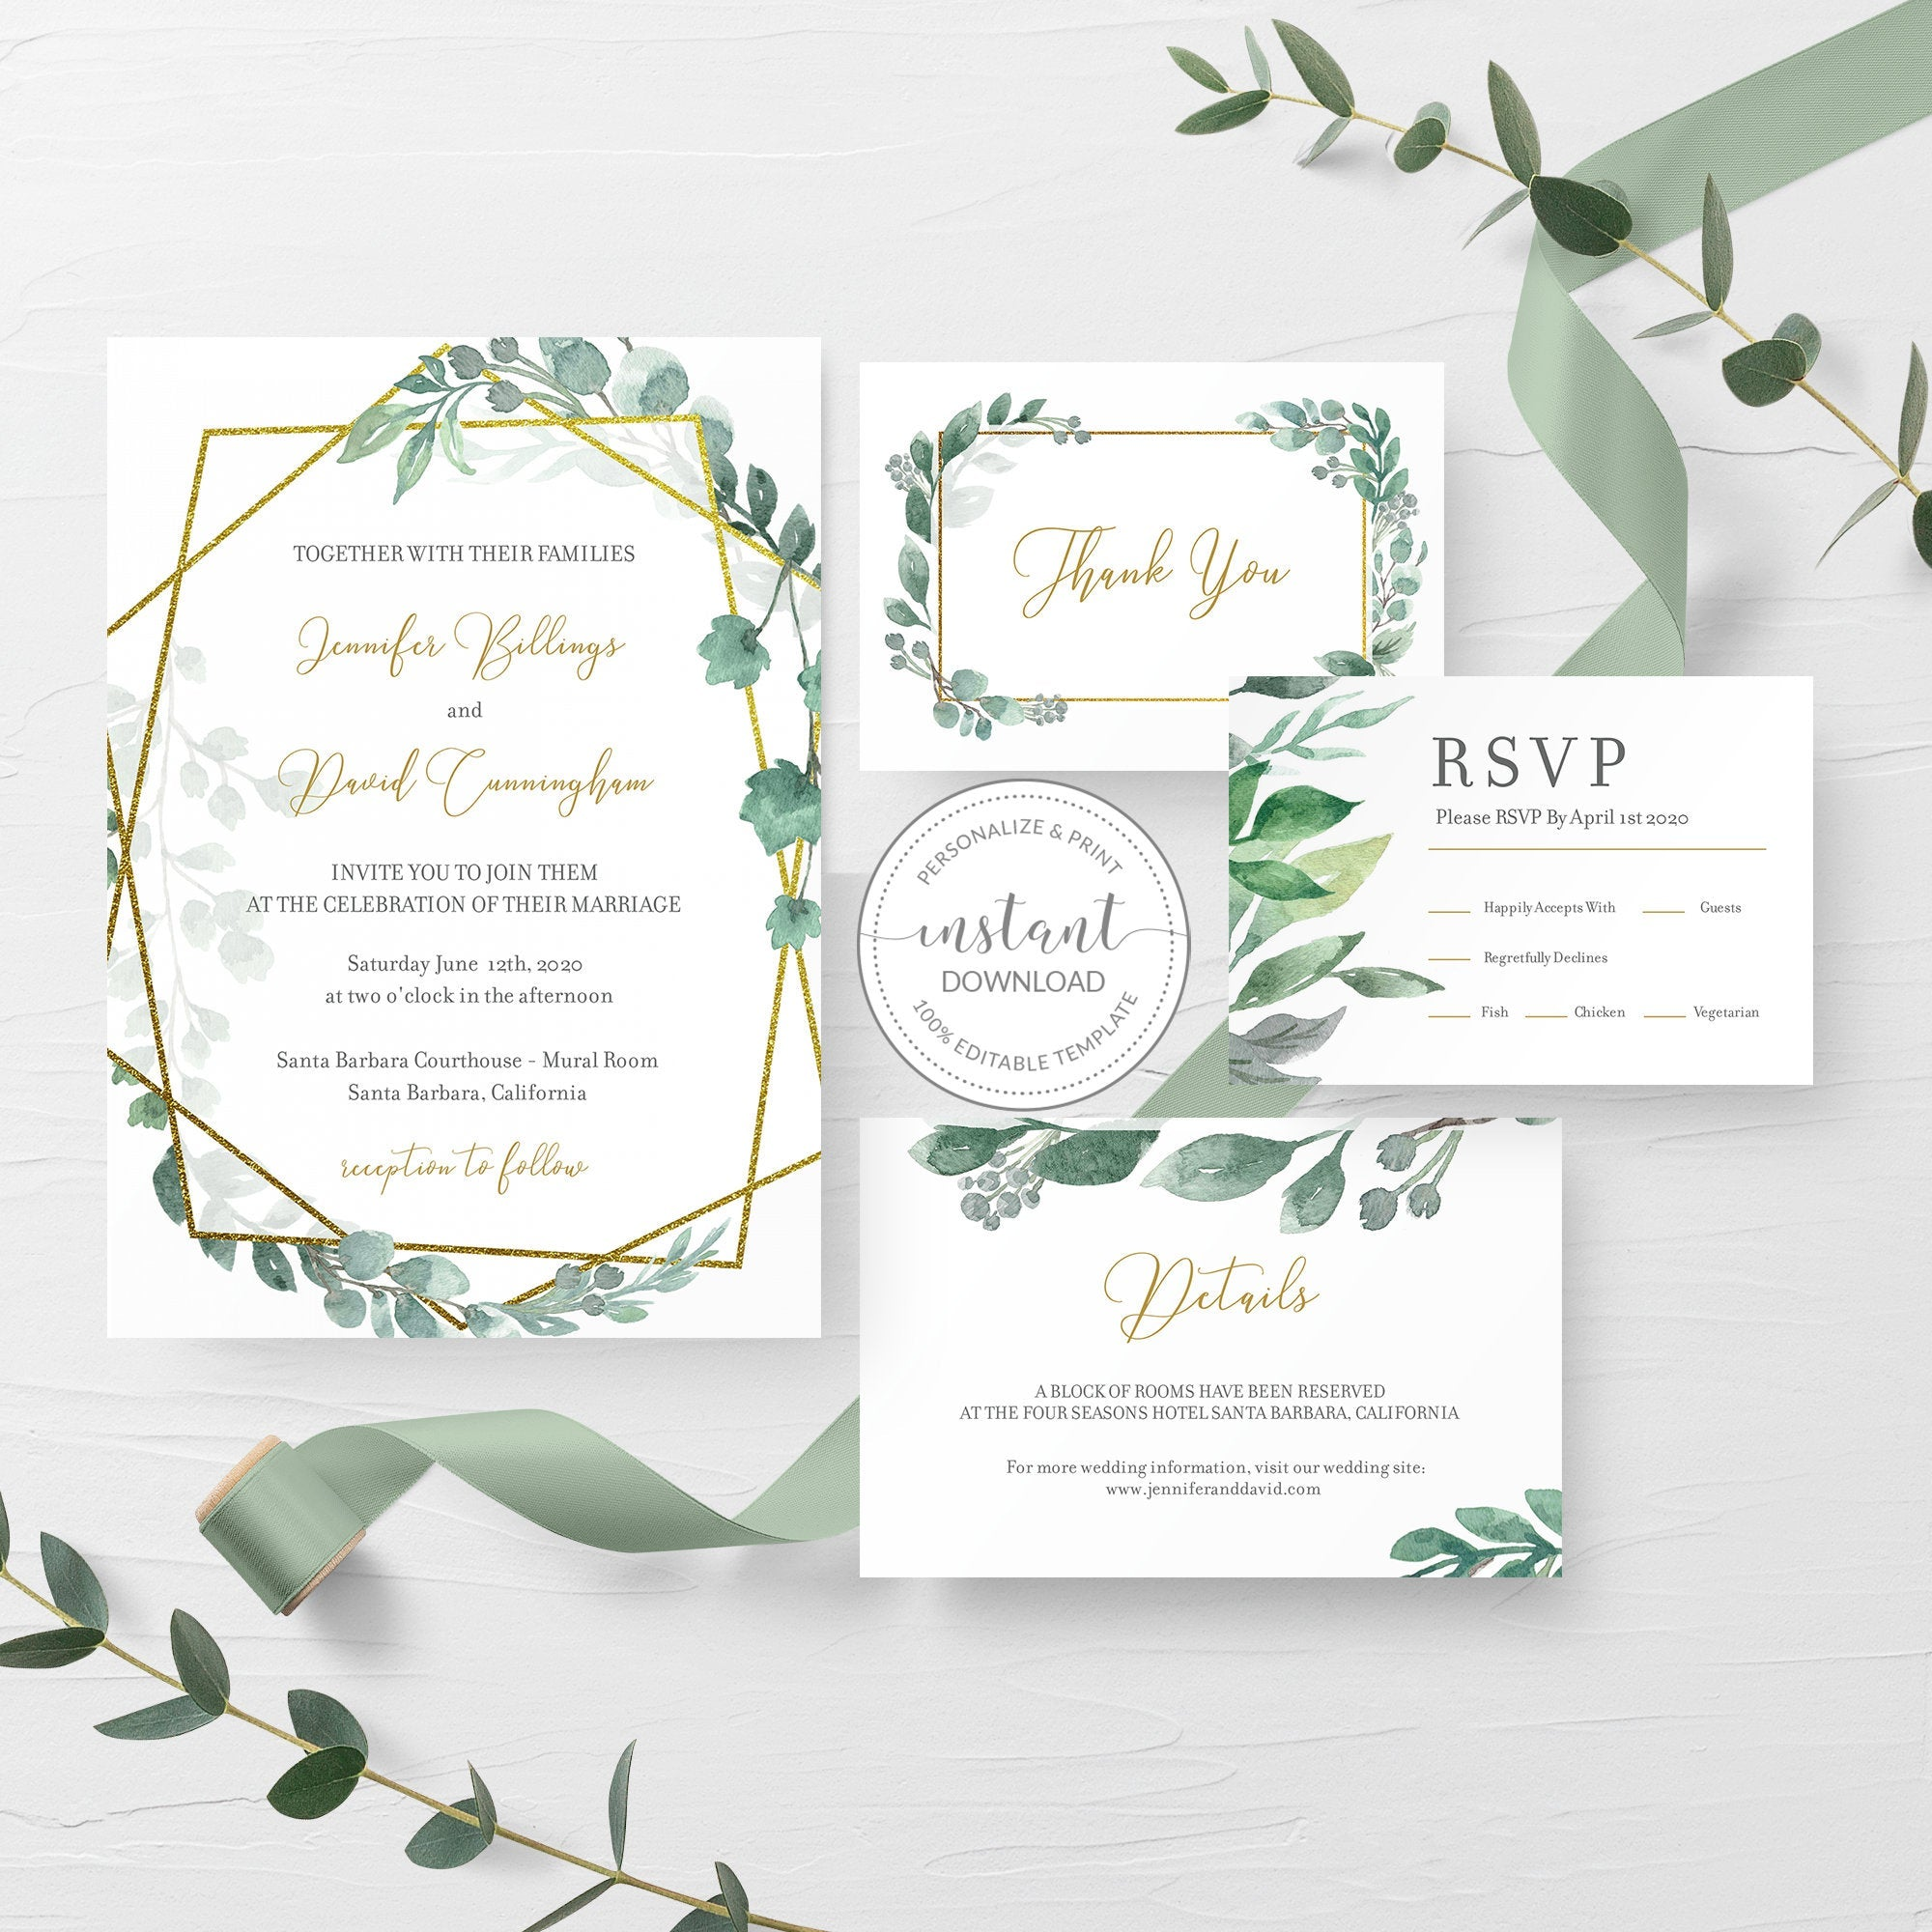 Greenery Wedding Invitation Template, Gold Geometric Wedding Invitation, Editable Wedding Invitation Suite, INSTANT DOWNLOAD - GFG100 - @PlumPolkaDot